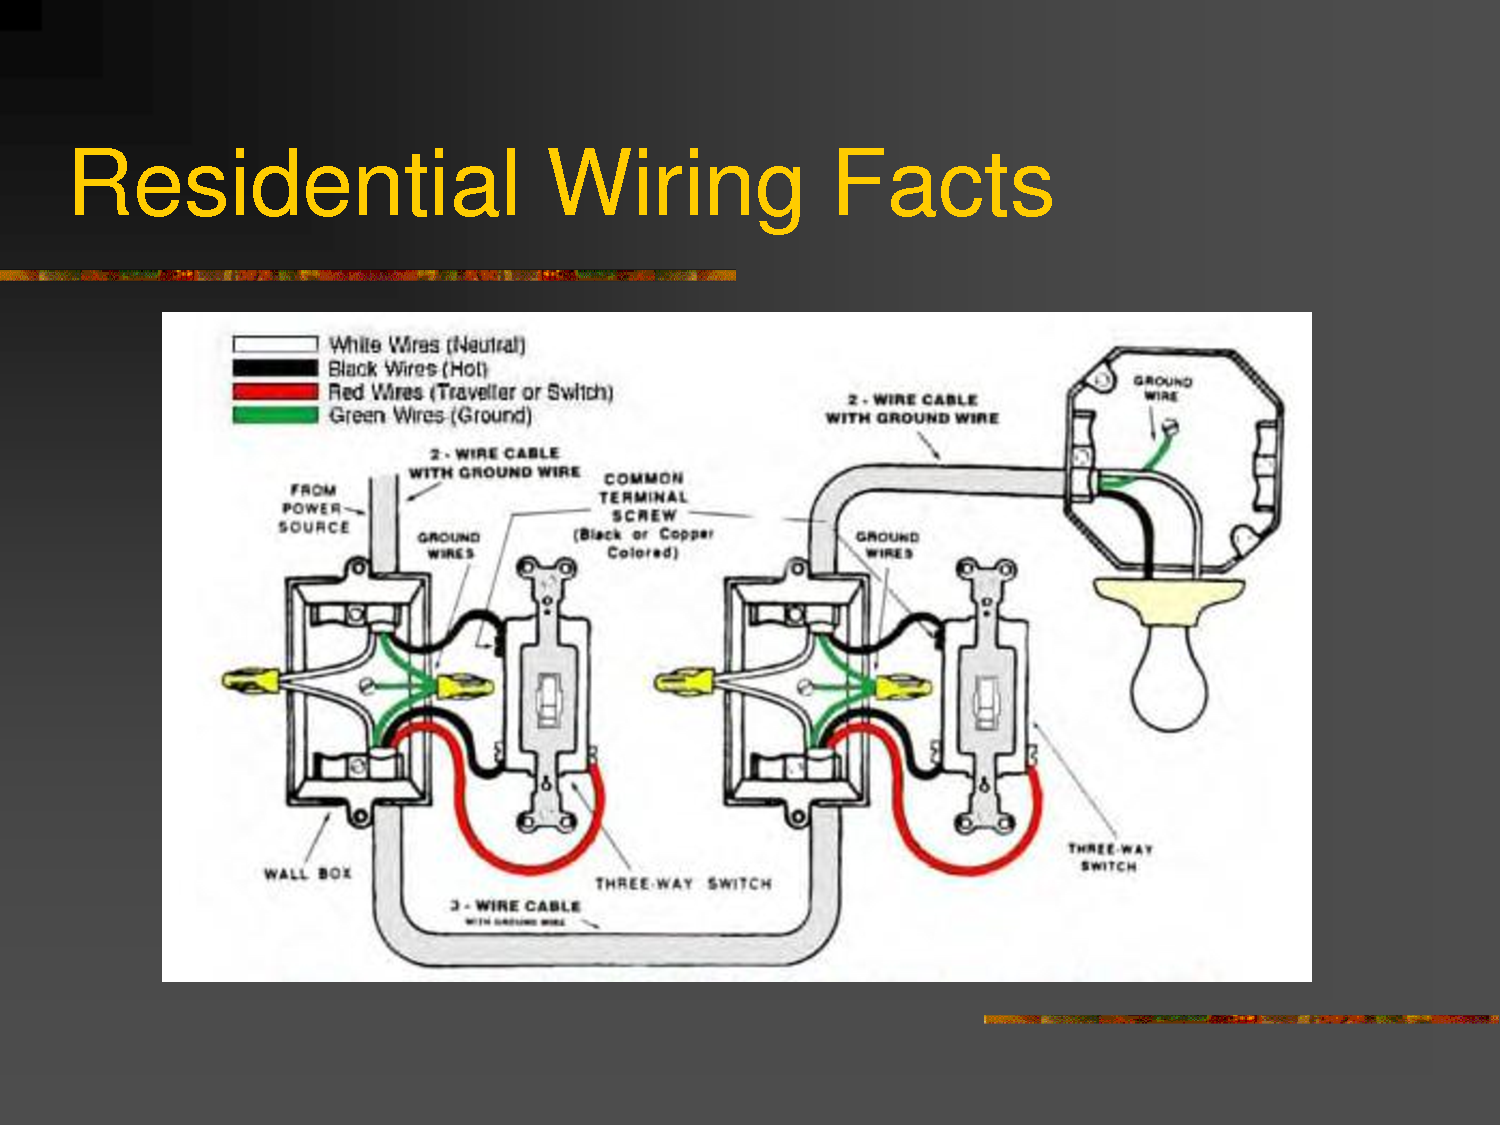 household wiring diagrams wiring diagram new residential electrical wiring diagrams for bat [ 1500 x 1125 Pixel ]